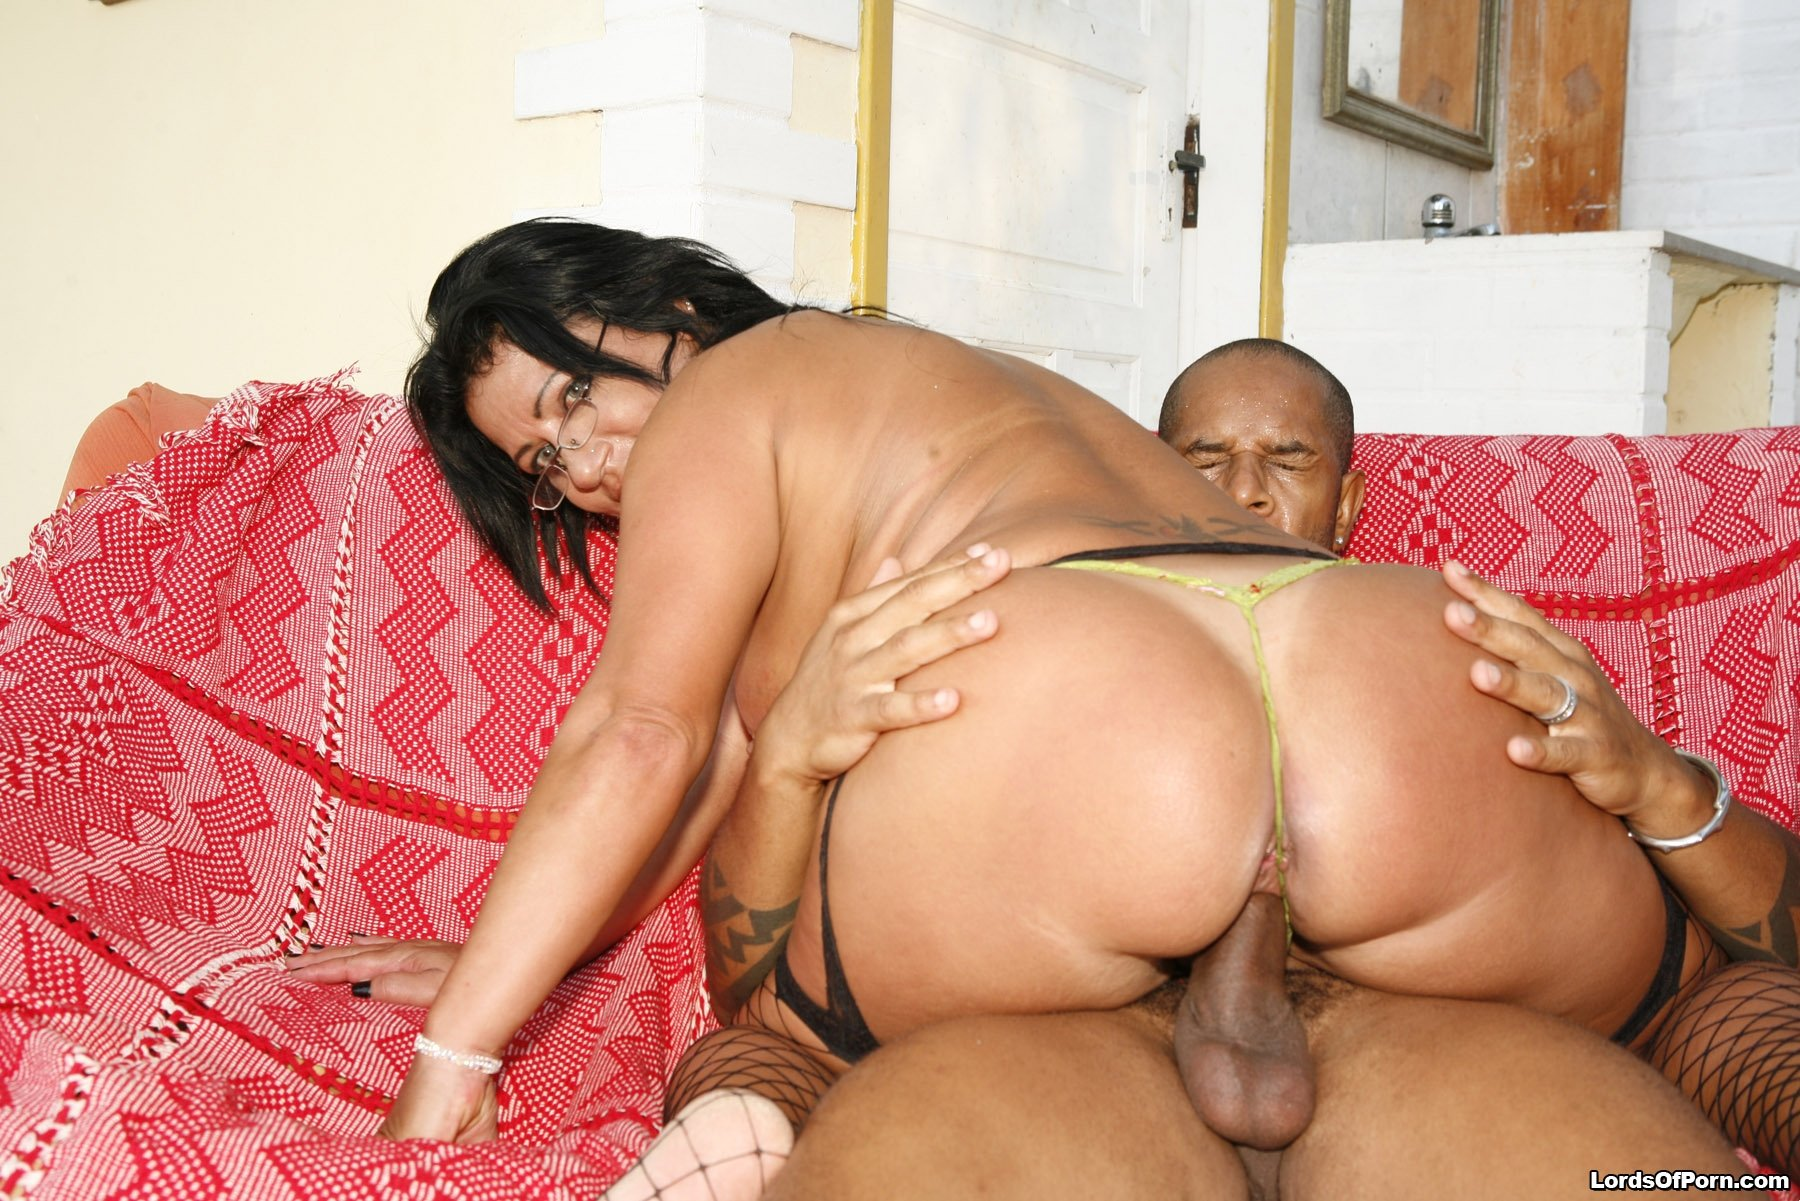 Hot Latina Mom With A Big Fat Ass And Wet Pussy-6961